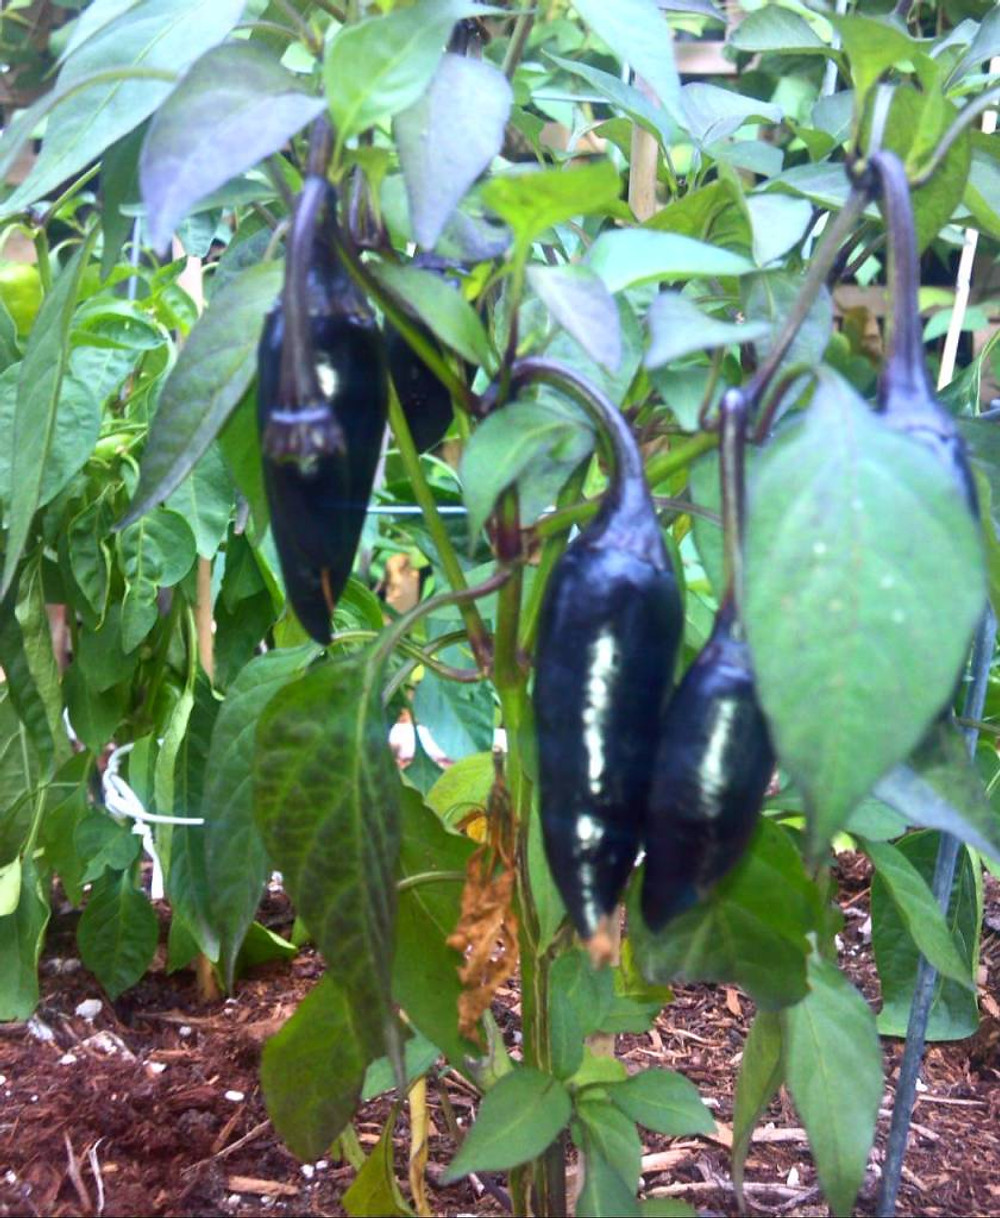 black peppers are doing fantastic along with the others - just need this strange patch of rain to go away and give us back our beautiful indian summer!